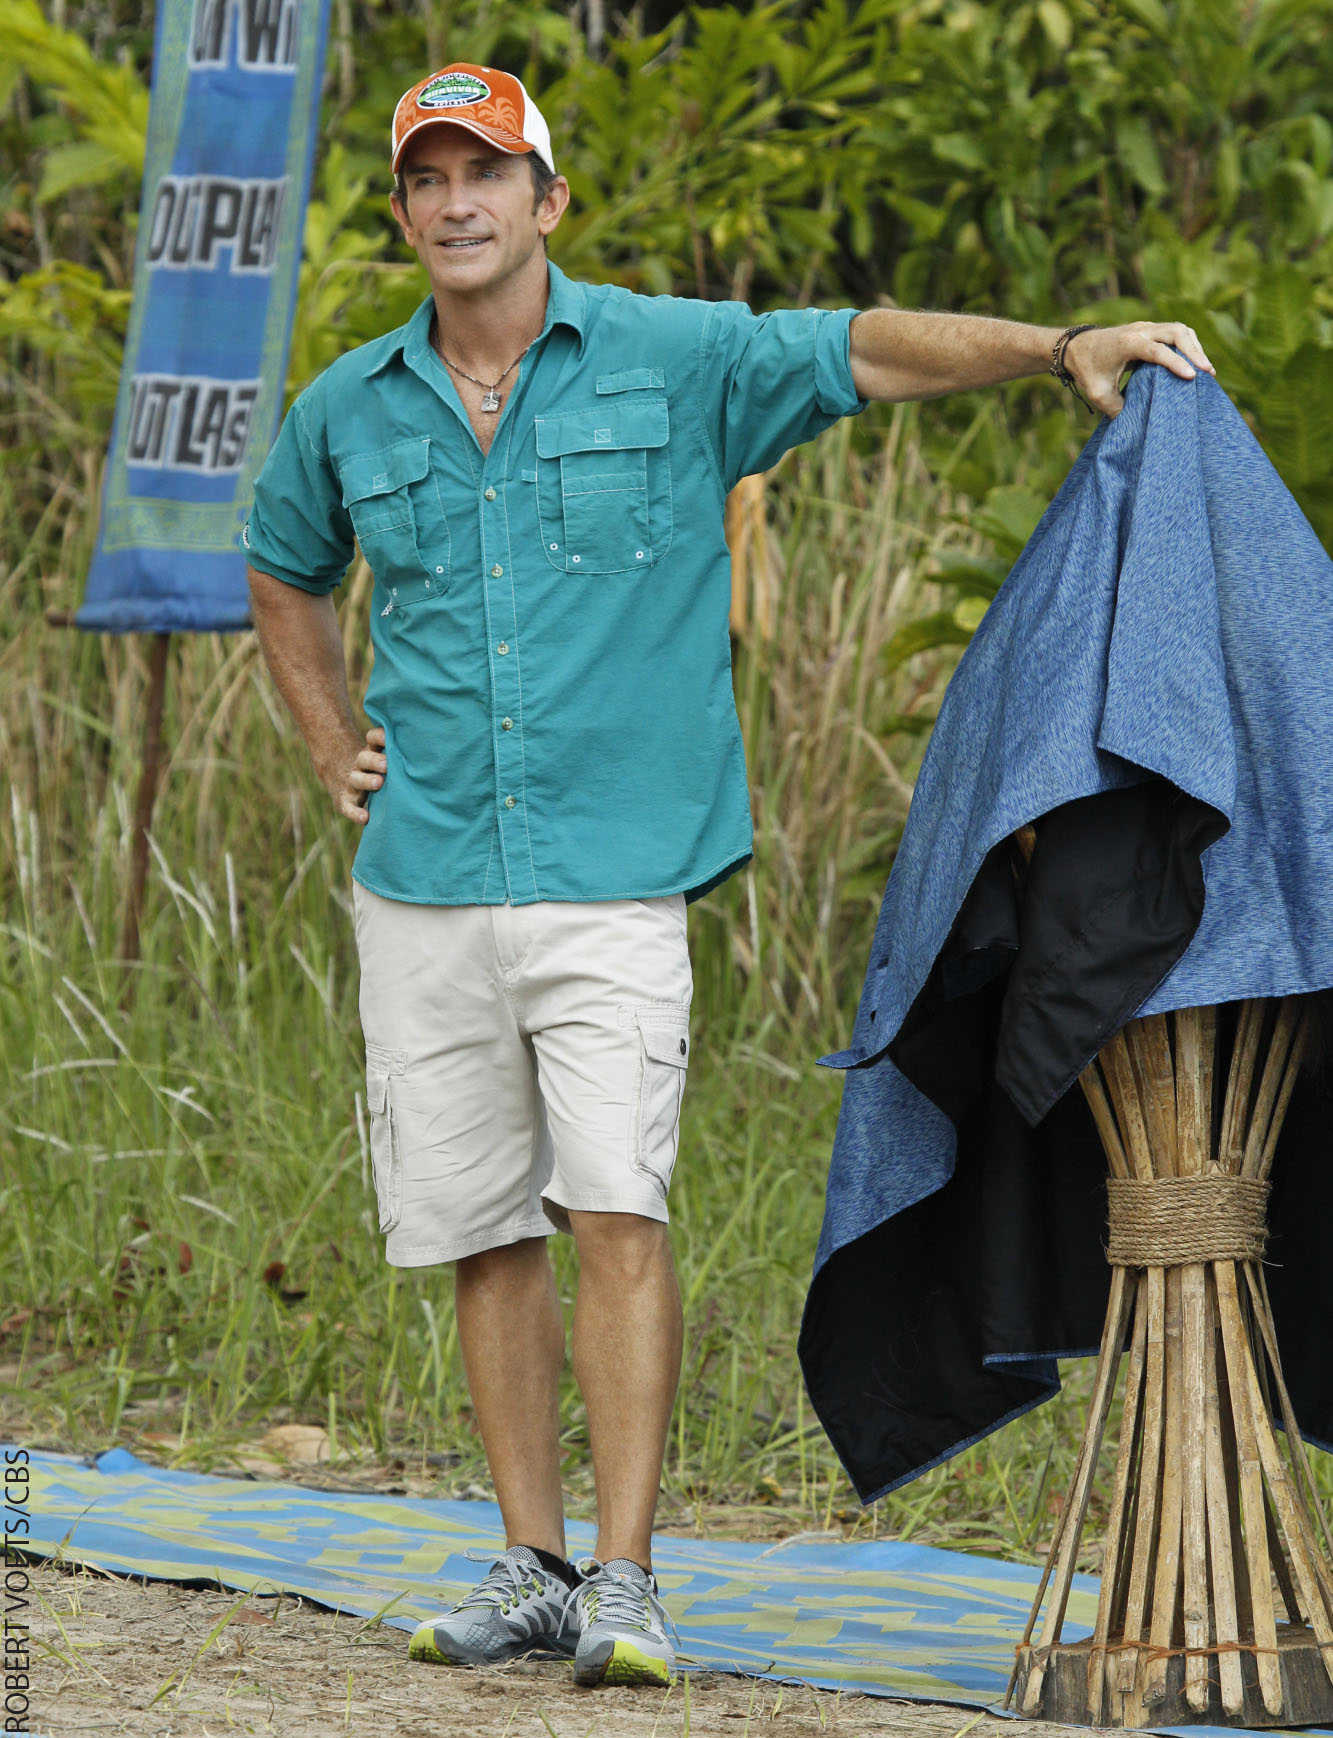 Jeff Probst's Guide to Surviving the Entrepreneurial Jungle